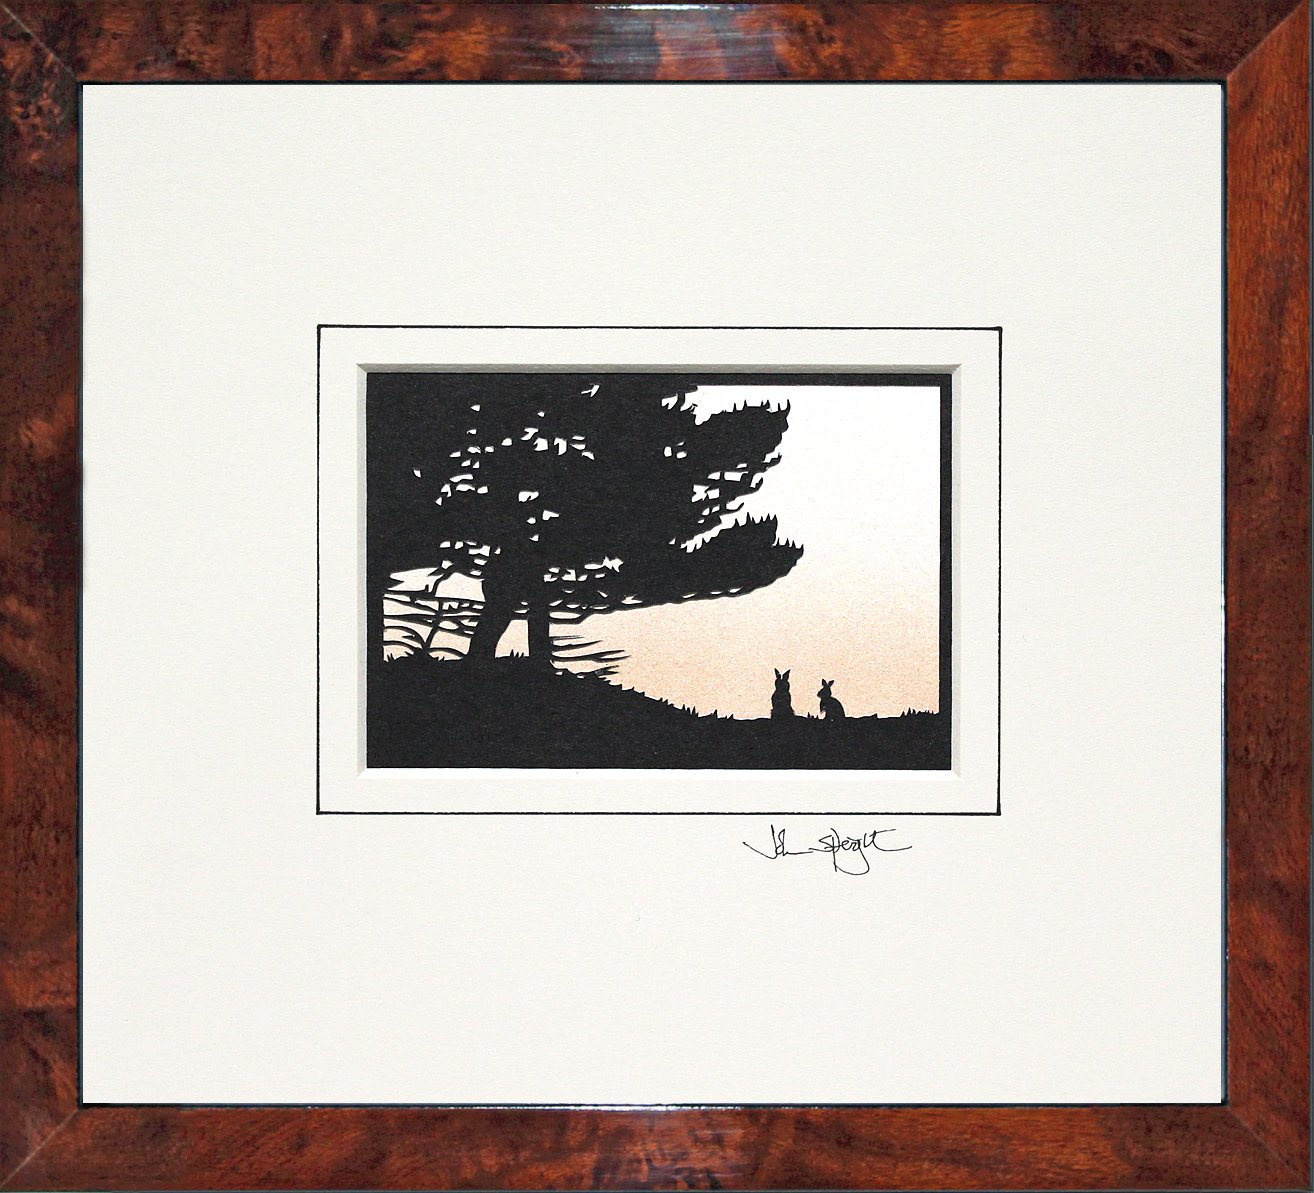 Rabbits Original Signed Hand Cut Silhouette Papercut Art by John Speight in Walnut Veneer Frame Gift for Him and Her